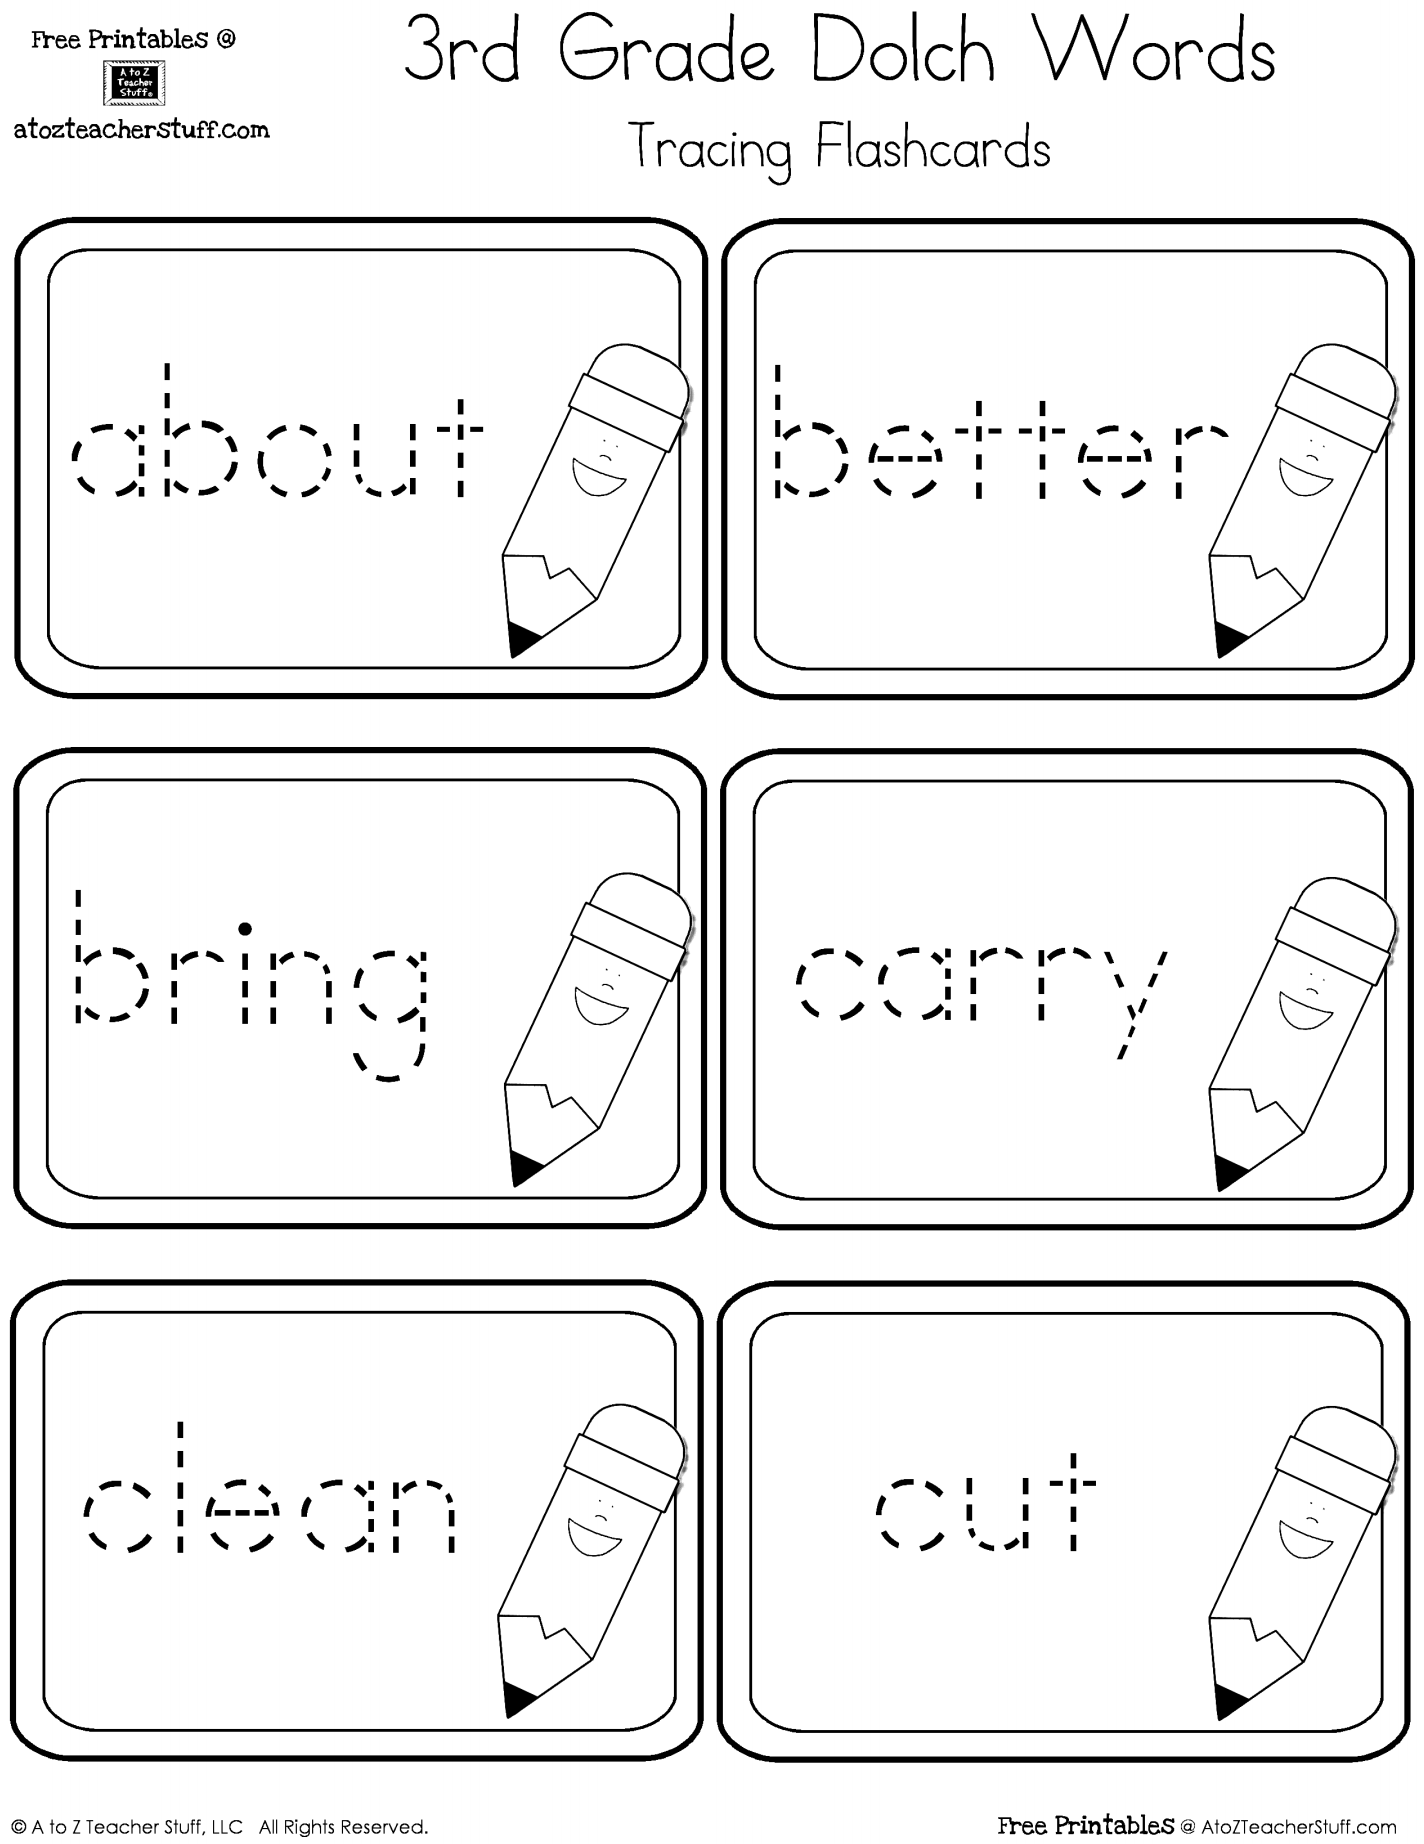 Worksheets Sight Word Worksheets For First Grade third grade dolch sight words tracing flashcards a to z teacher 3rd cards free printables